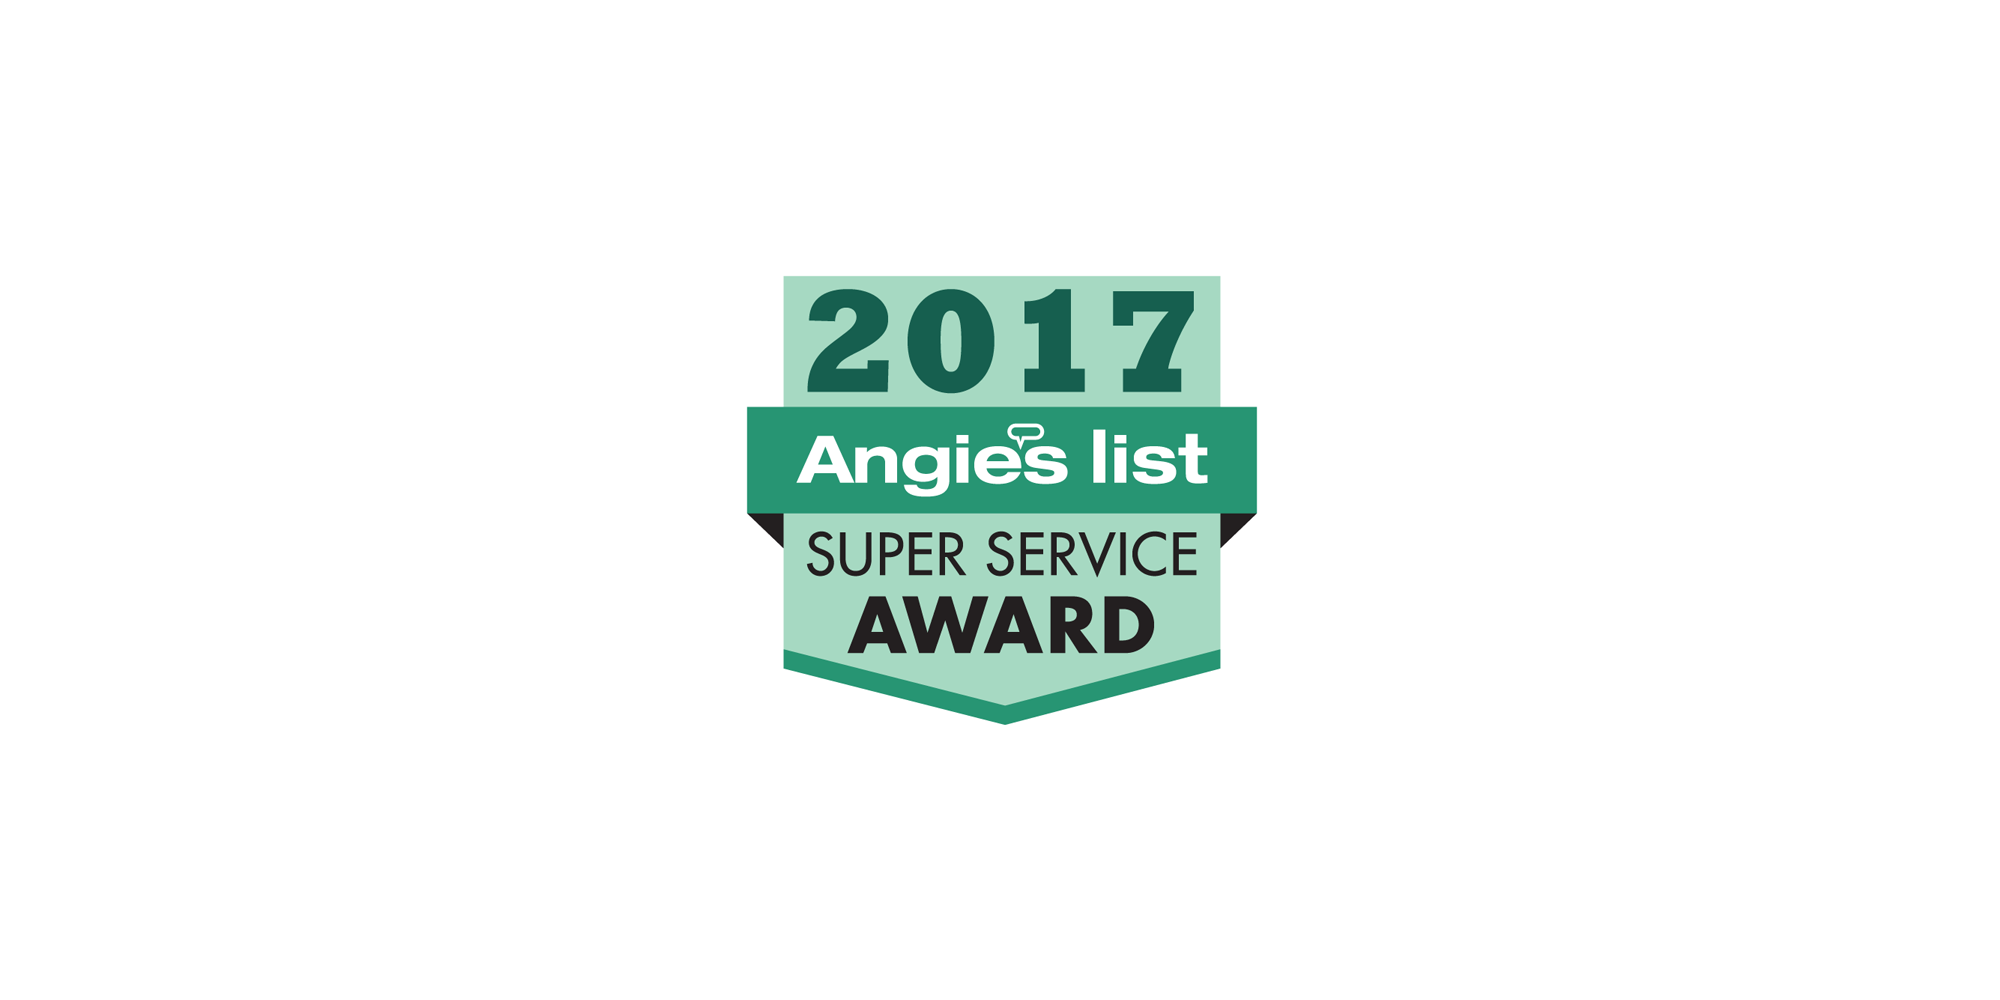 Angie's List Super Service Award - From 2016-2017